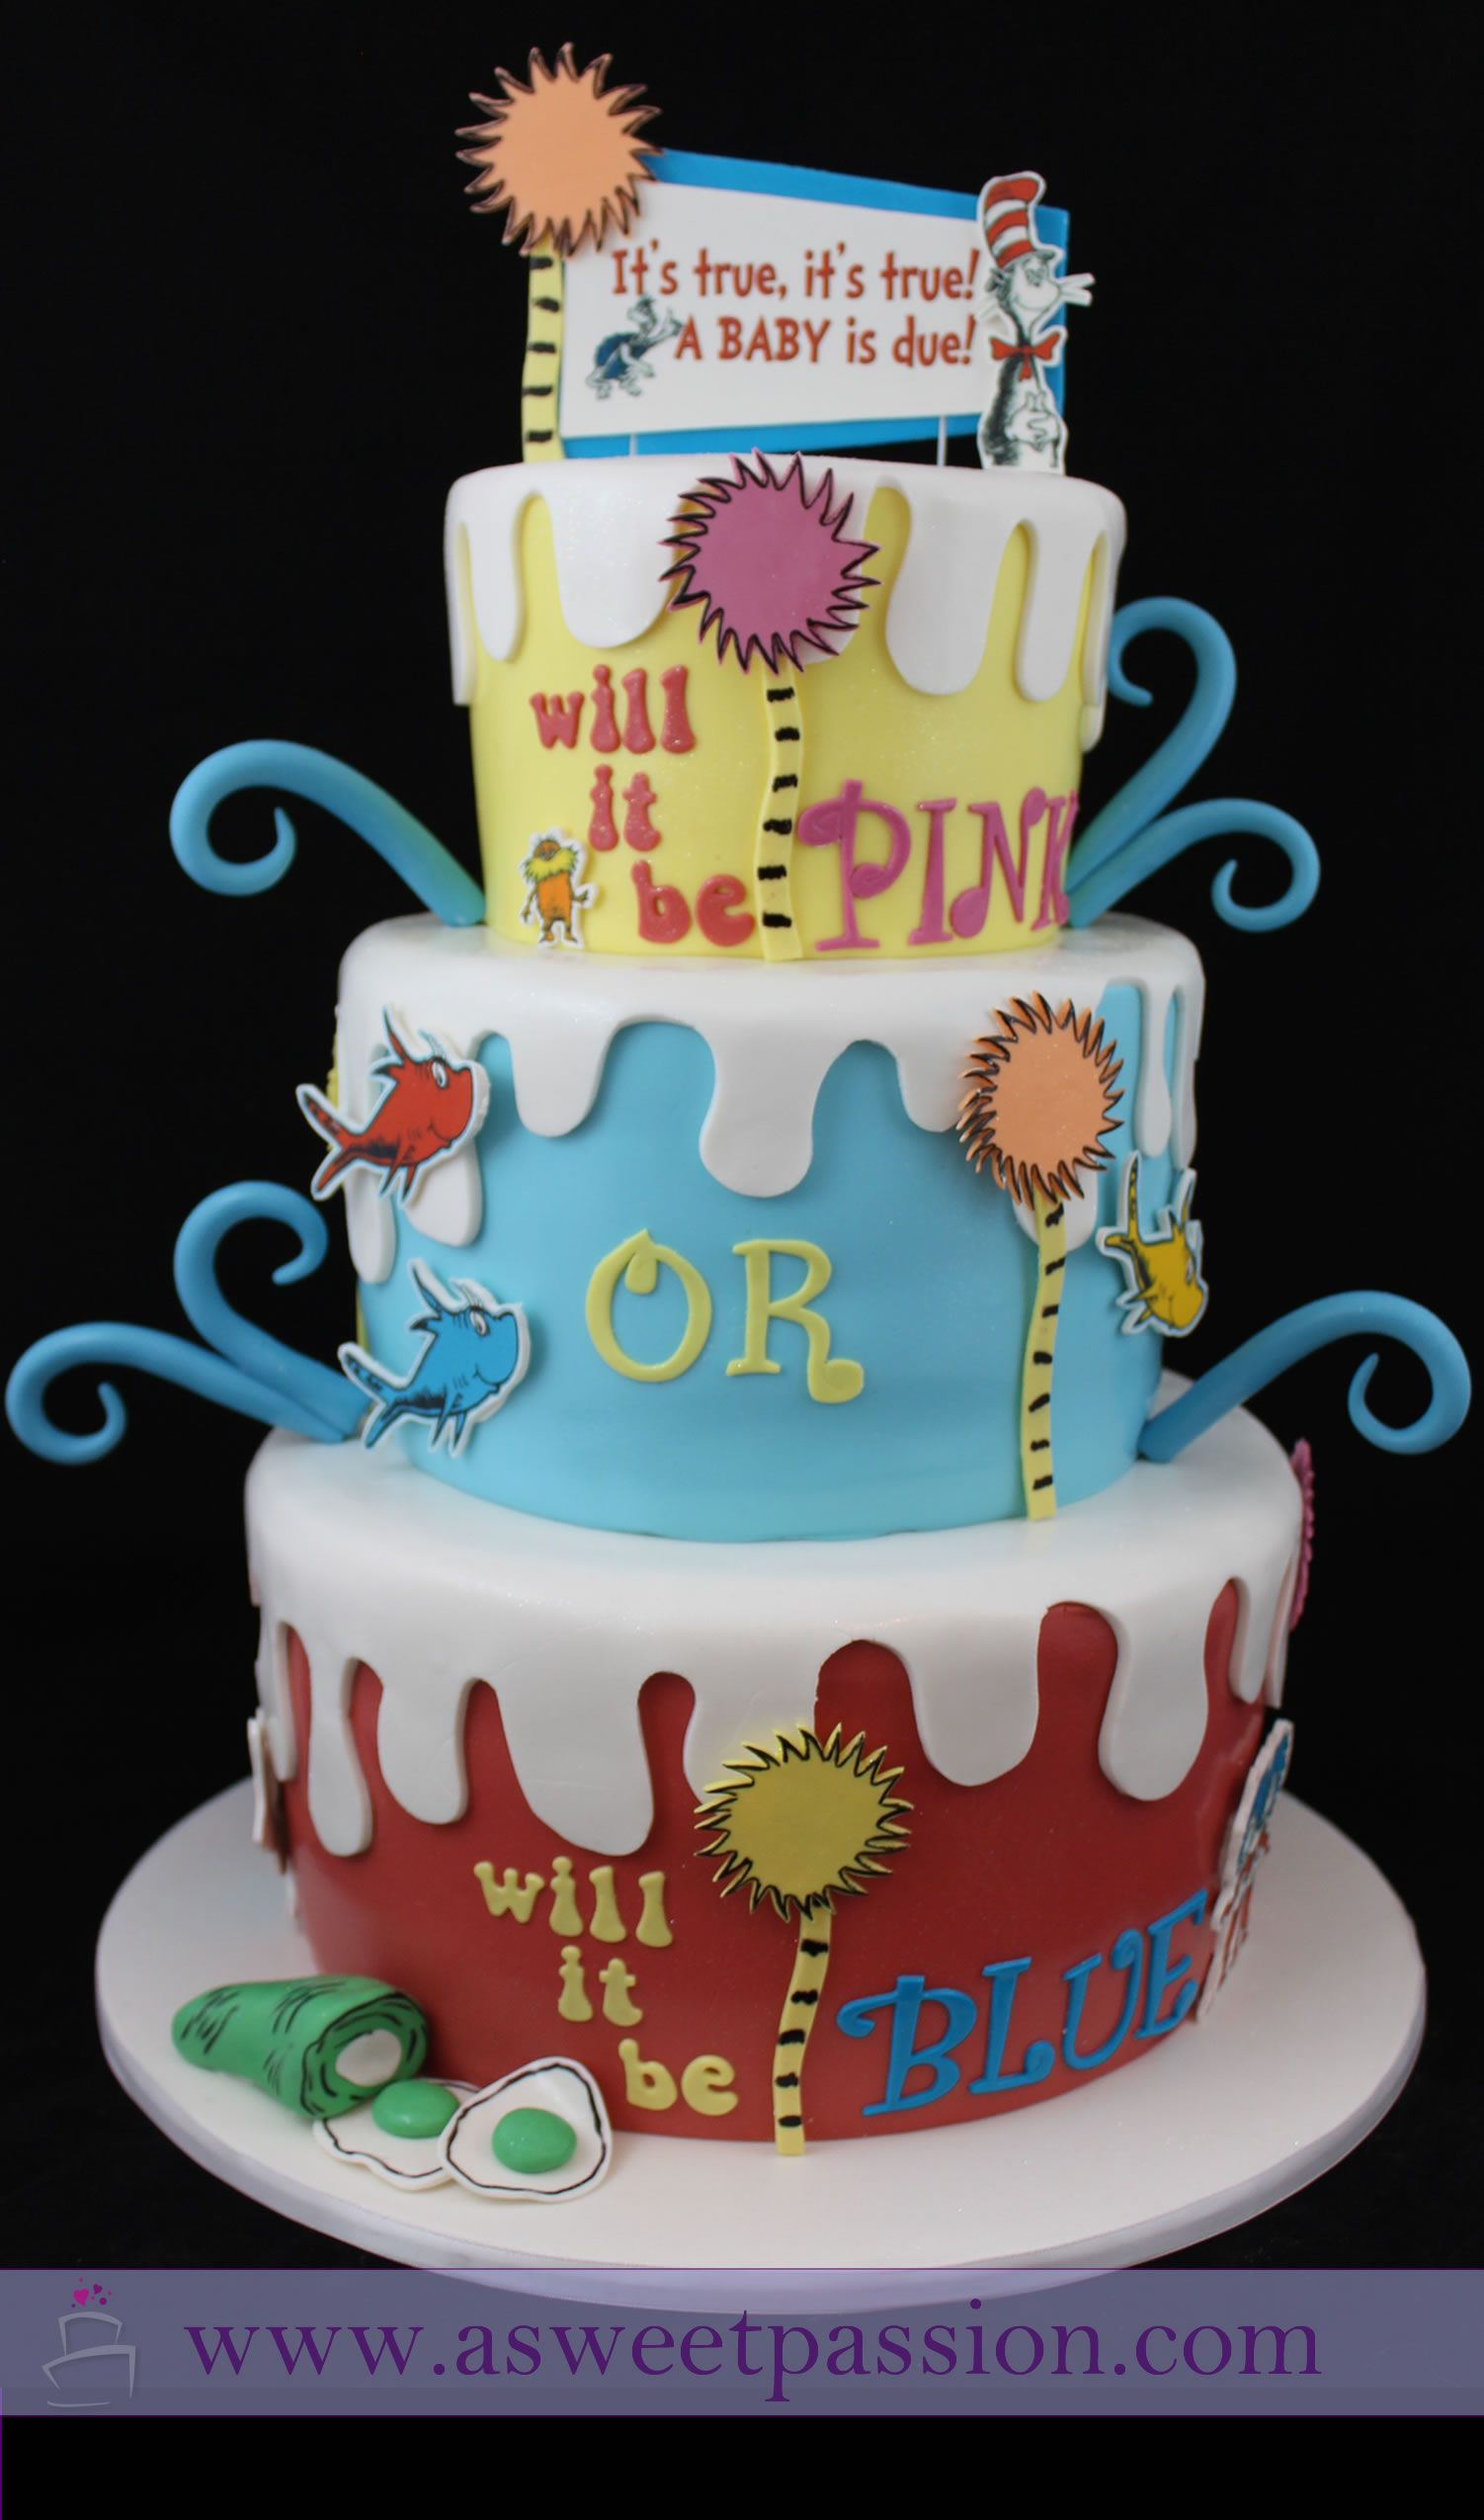 Gender neutral baby shower ideas pinterest - Gender Reveal Cakes Are A Delicious Way To Announce Your Joyful News To Family And Friends Our Gallery Will Give You Several Ideas For Creating A Cake Tha